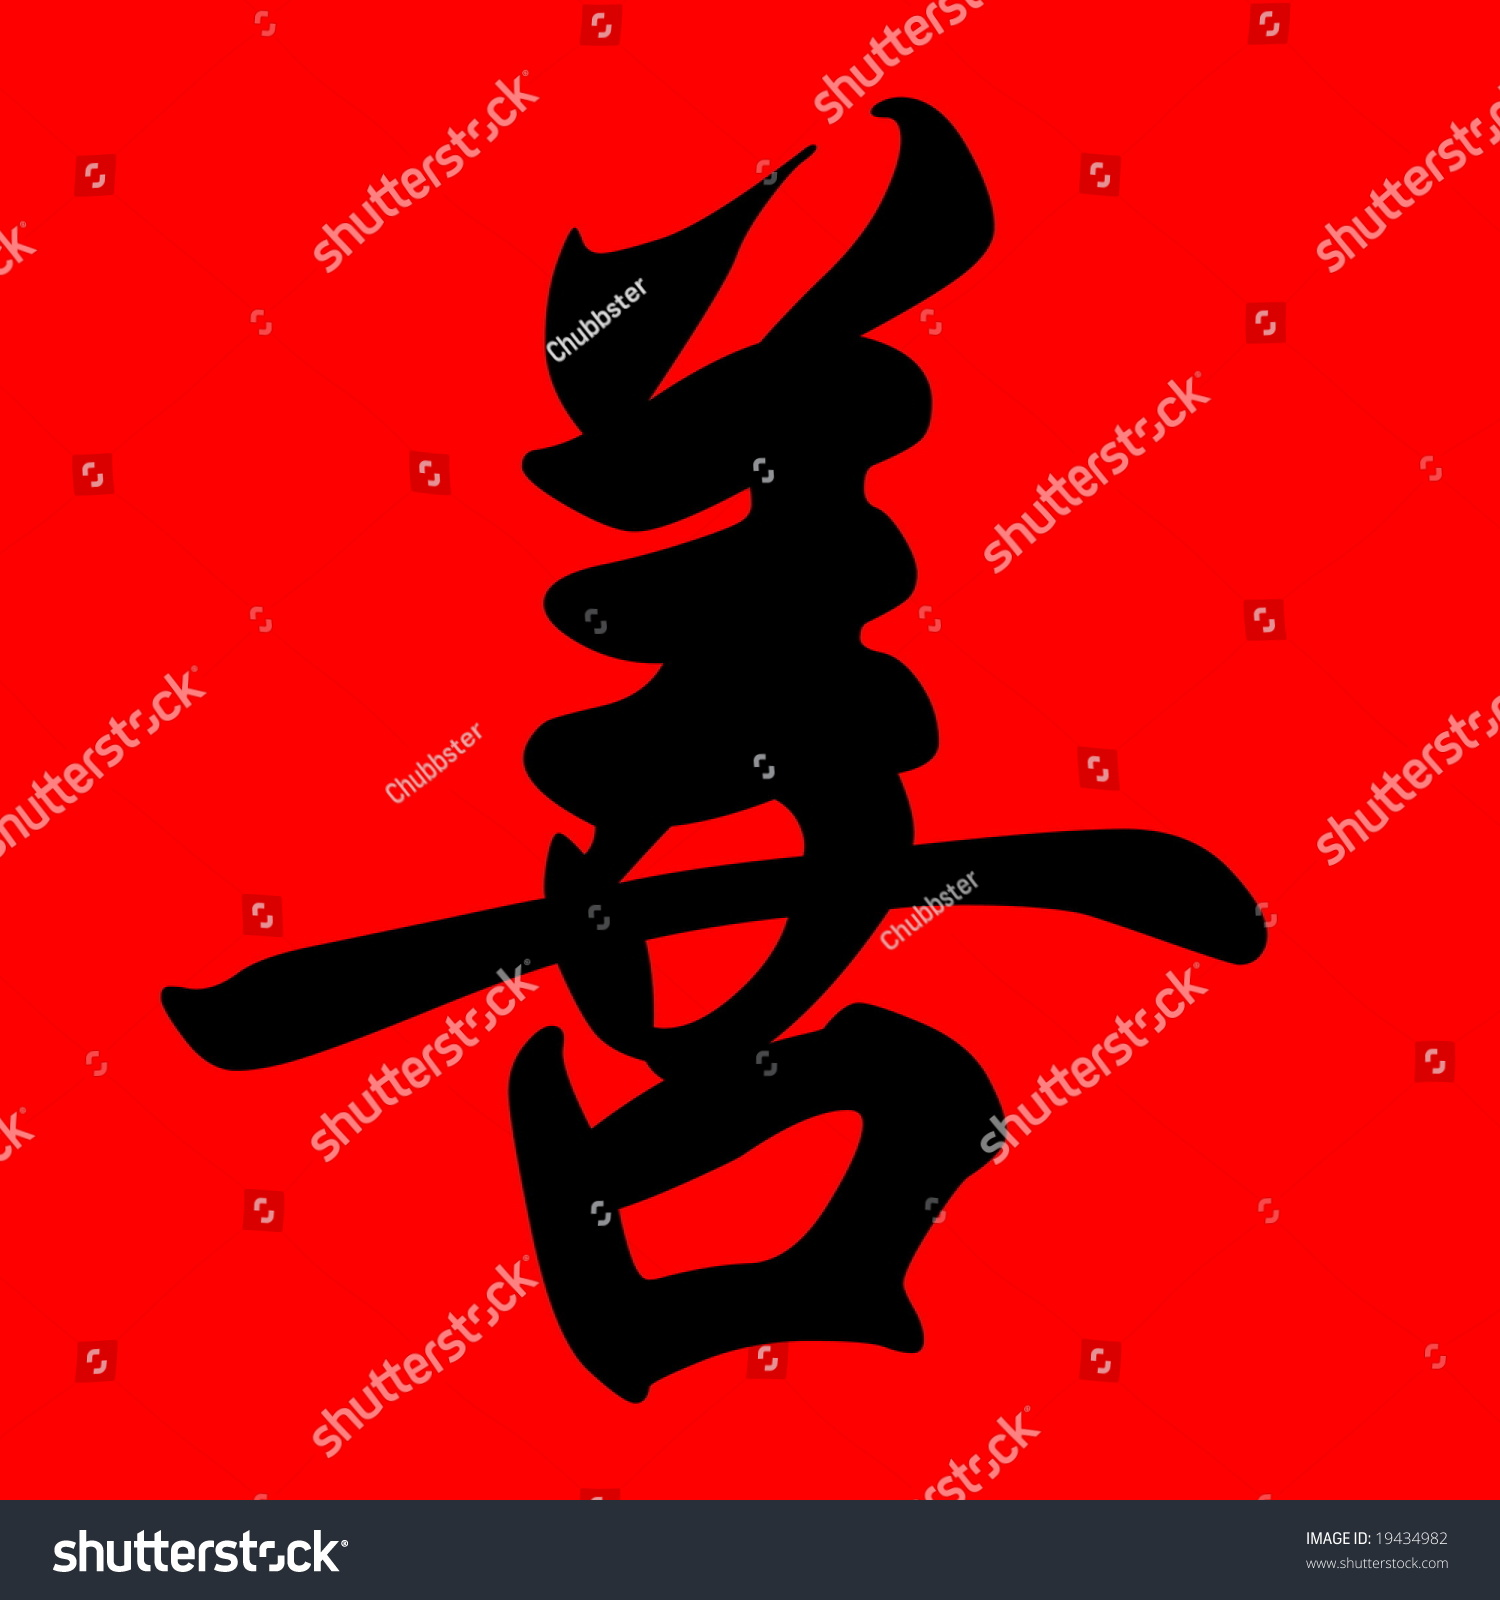 Chinese Calligraphy Character Meaning Kindness Stock Illustration